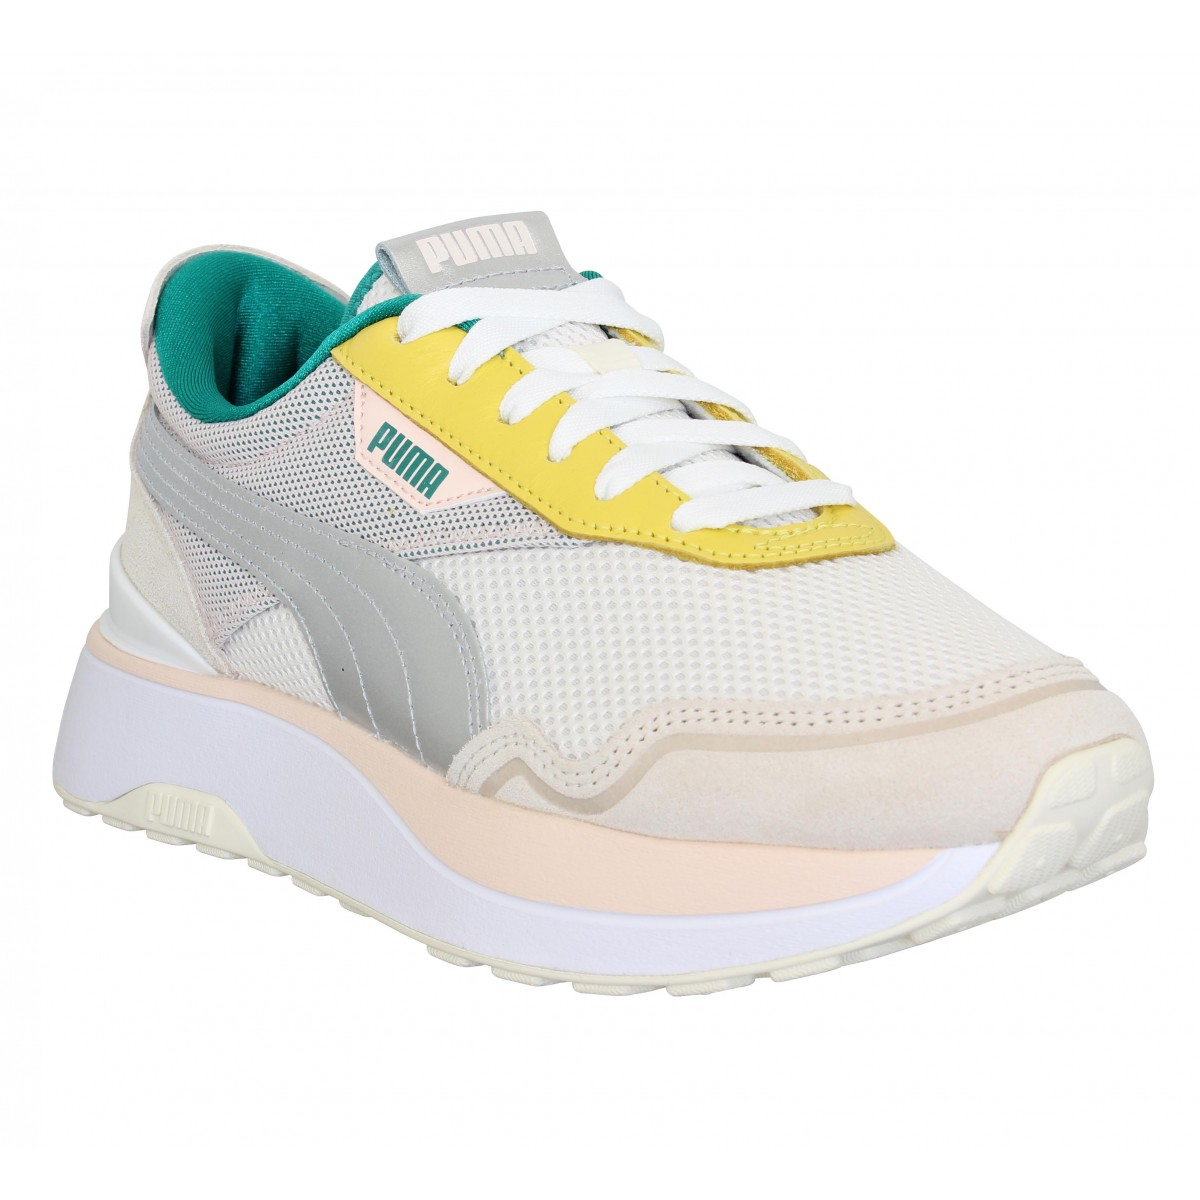 Baskets PUMA Cruise Rider velours toile Femme Silver Pink